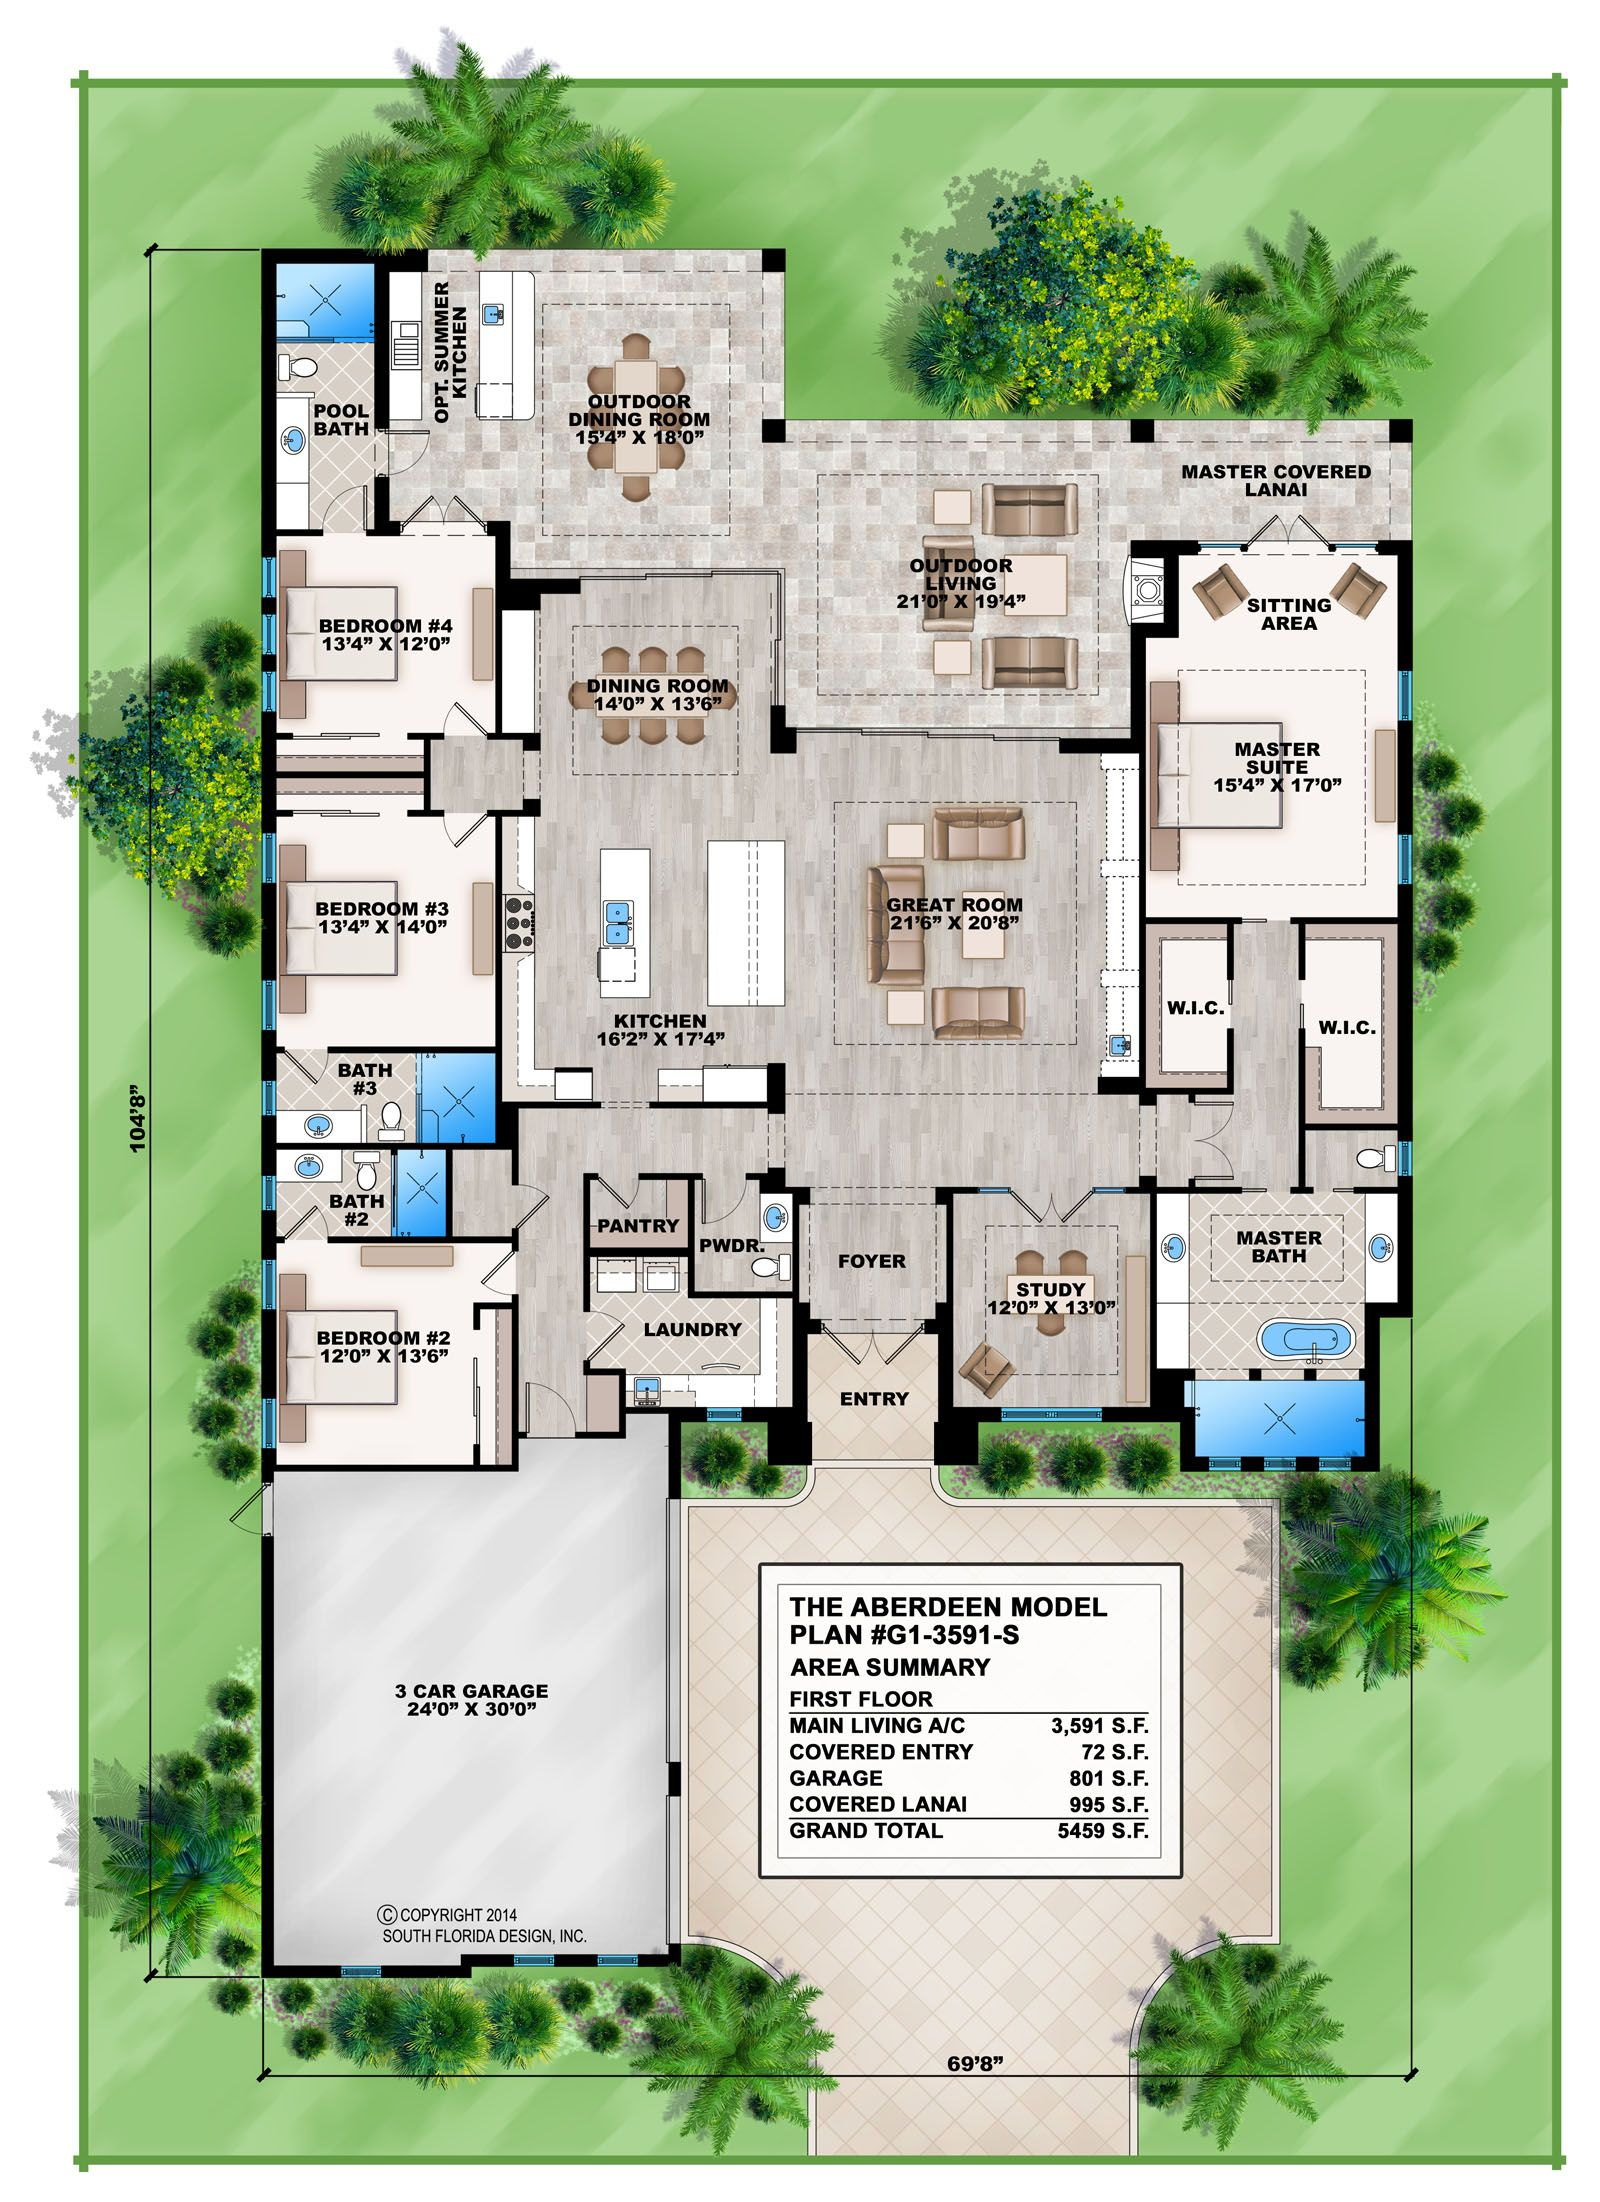 House Plan 207 00062 Florida Plan 2 562 Square Feet 4 Bedrooms 3 Bathrooms Florida House Plans House Layout Plans Pool House Plans